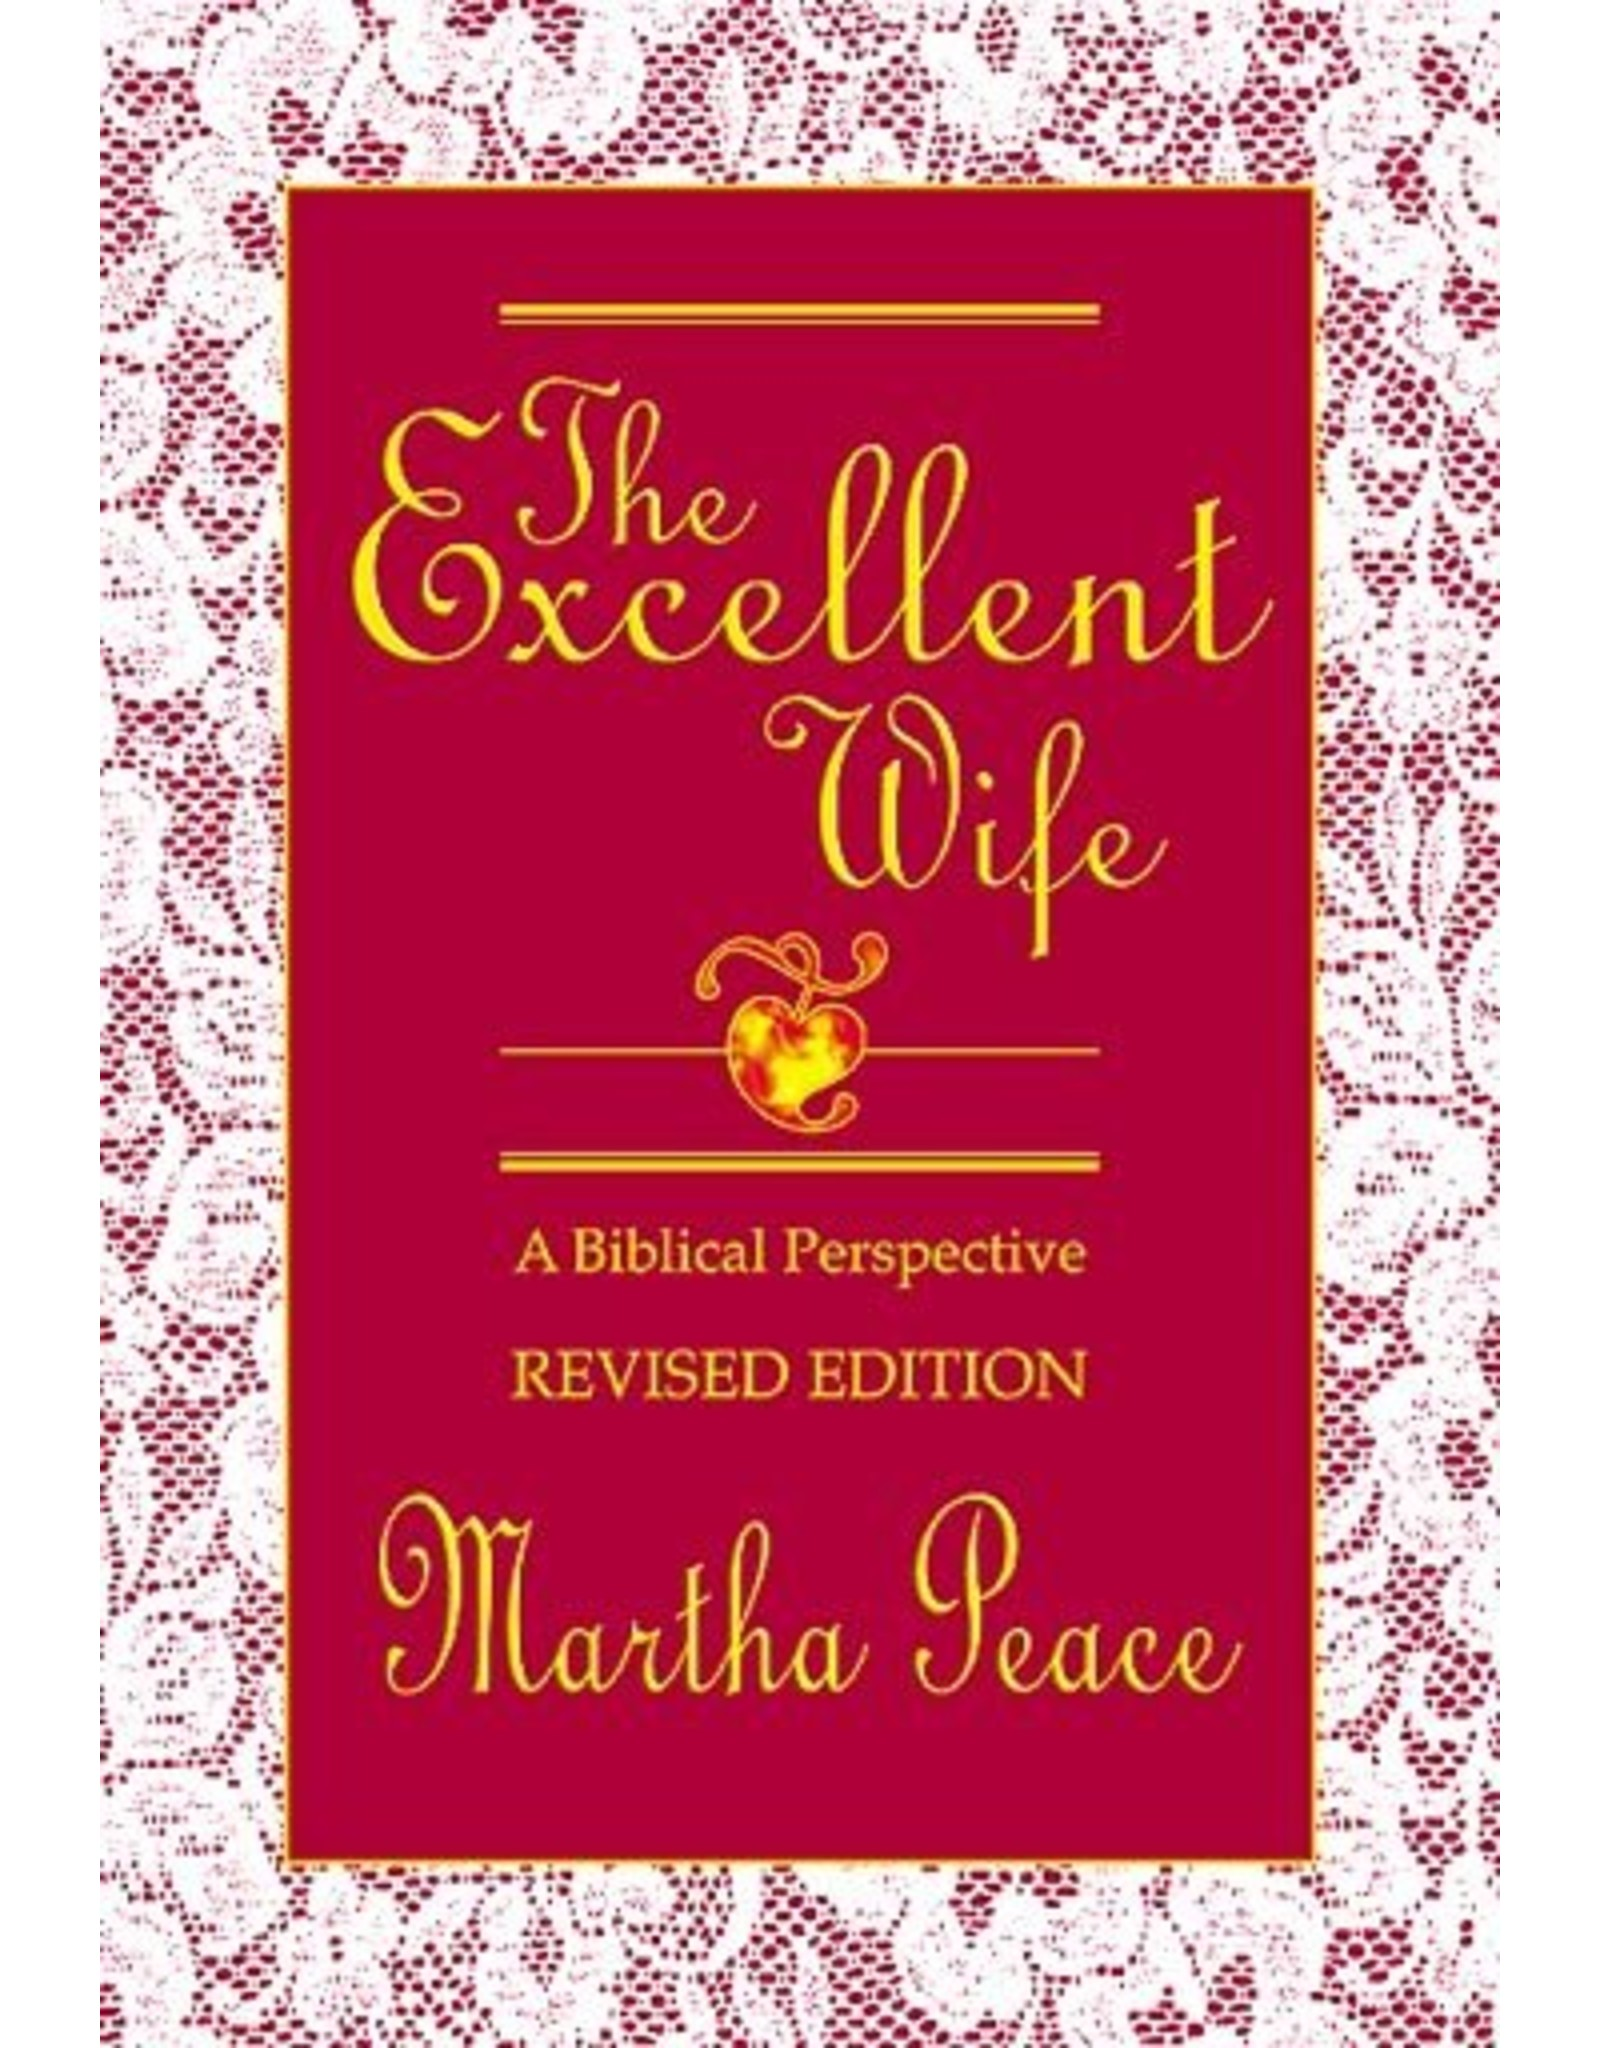 Focus Publishing The Excellent Wife: A Biblical Perspective (Revised Edition)